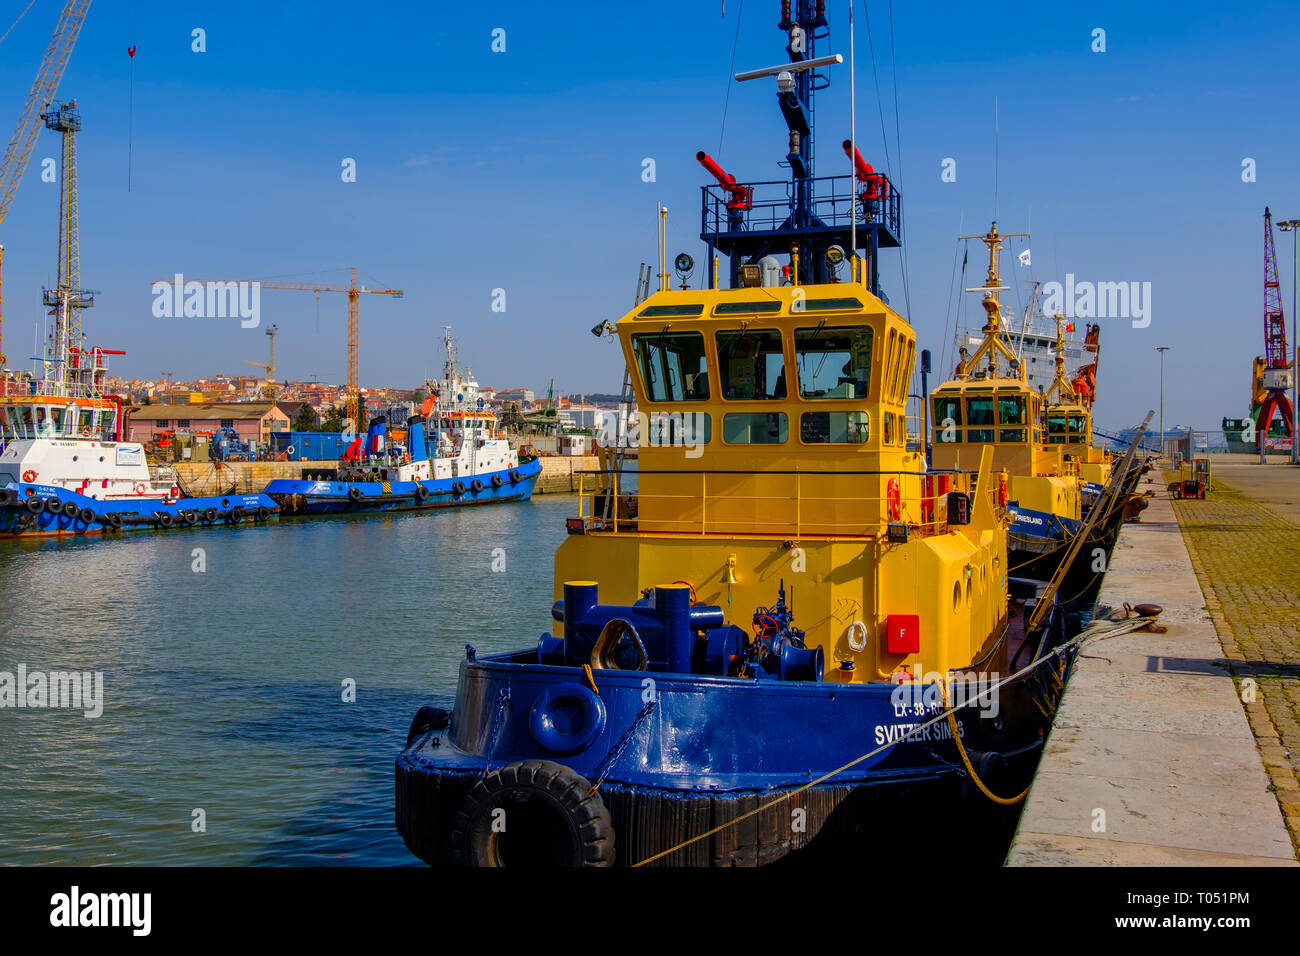 Tugboat in the harbor. Comercial port, Lisbon, Portugal. Europe - Stock Image